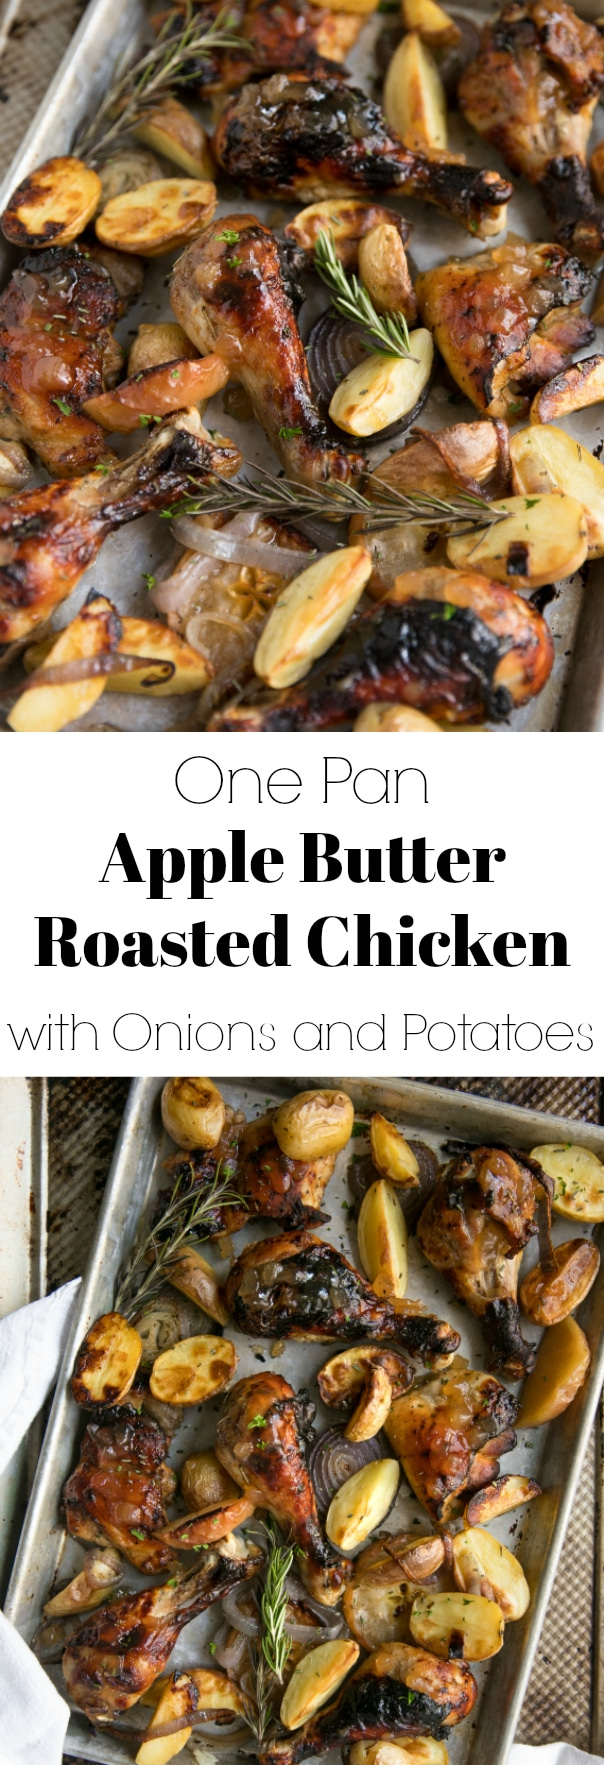 Easy One Pan Apple Butter Roasted Chicken with Onions and Potatoes. A delicious combination of sweet and savory in one easy dinner via @theforkedspoon #chicken #healthyrecipe #potatoes #apples #mealplan #easyrecipe #applebutter #recipe